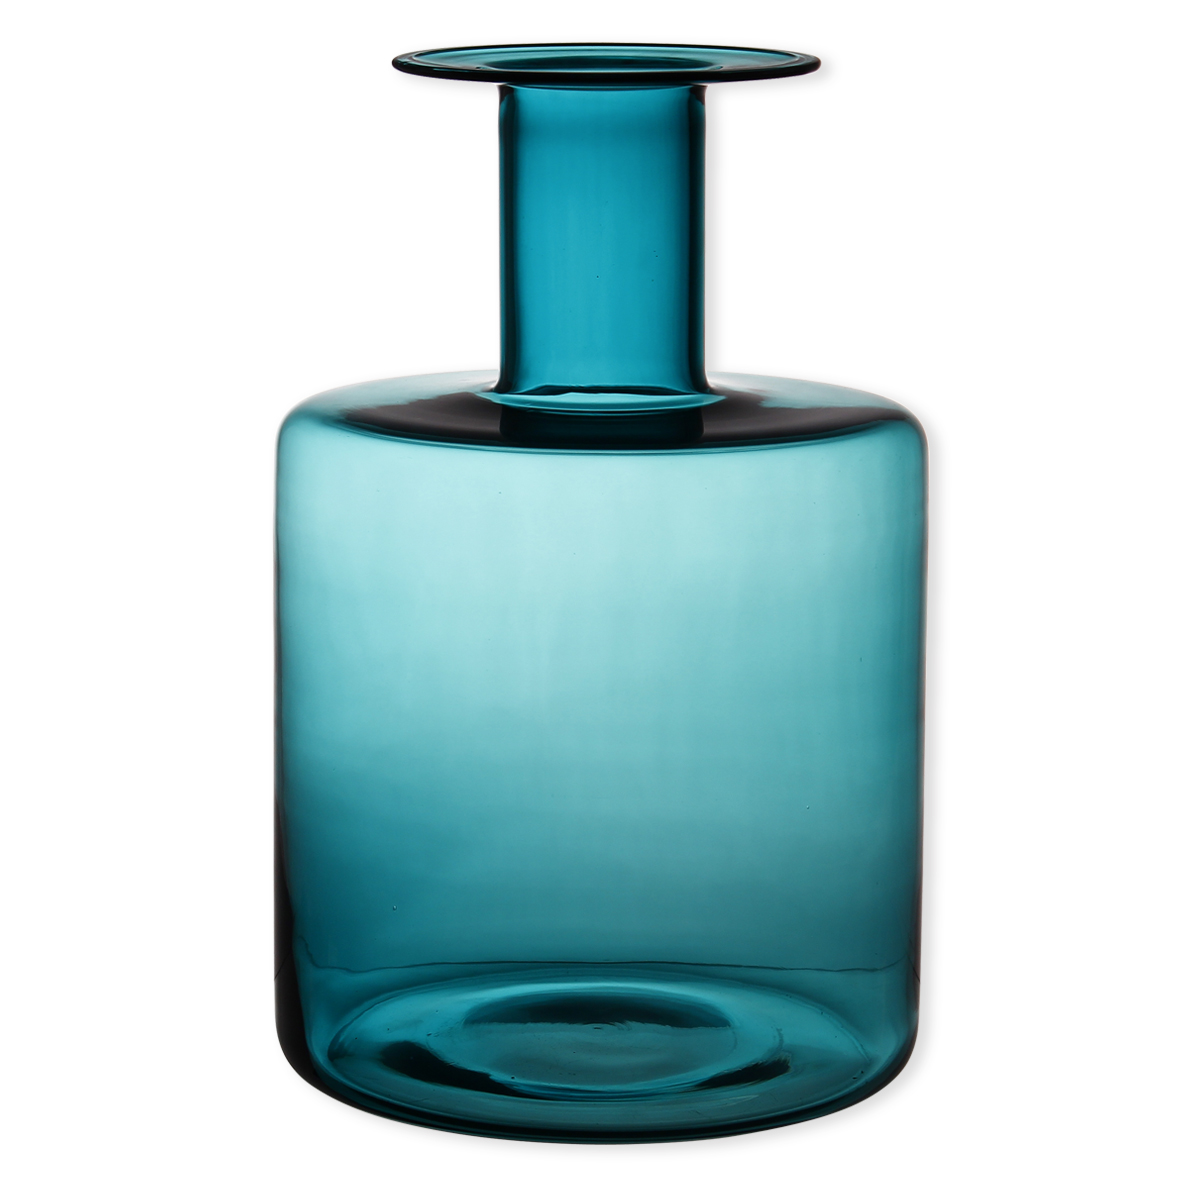 vase bleu turquoise en verre souffl bouche 40cm bruno. Black Bedroom Furniture Sets. Home Design Ideas